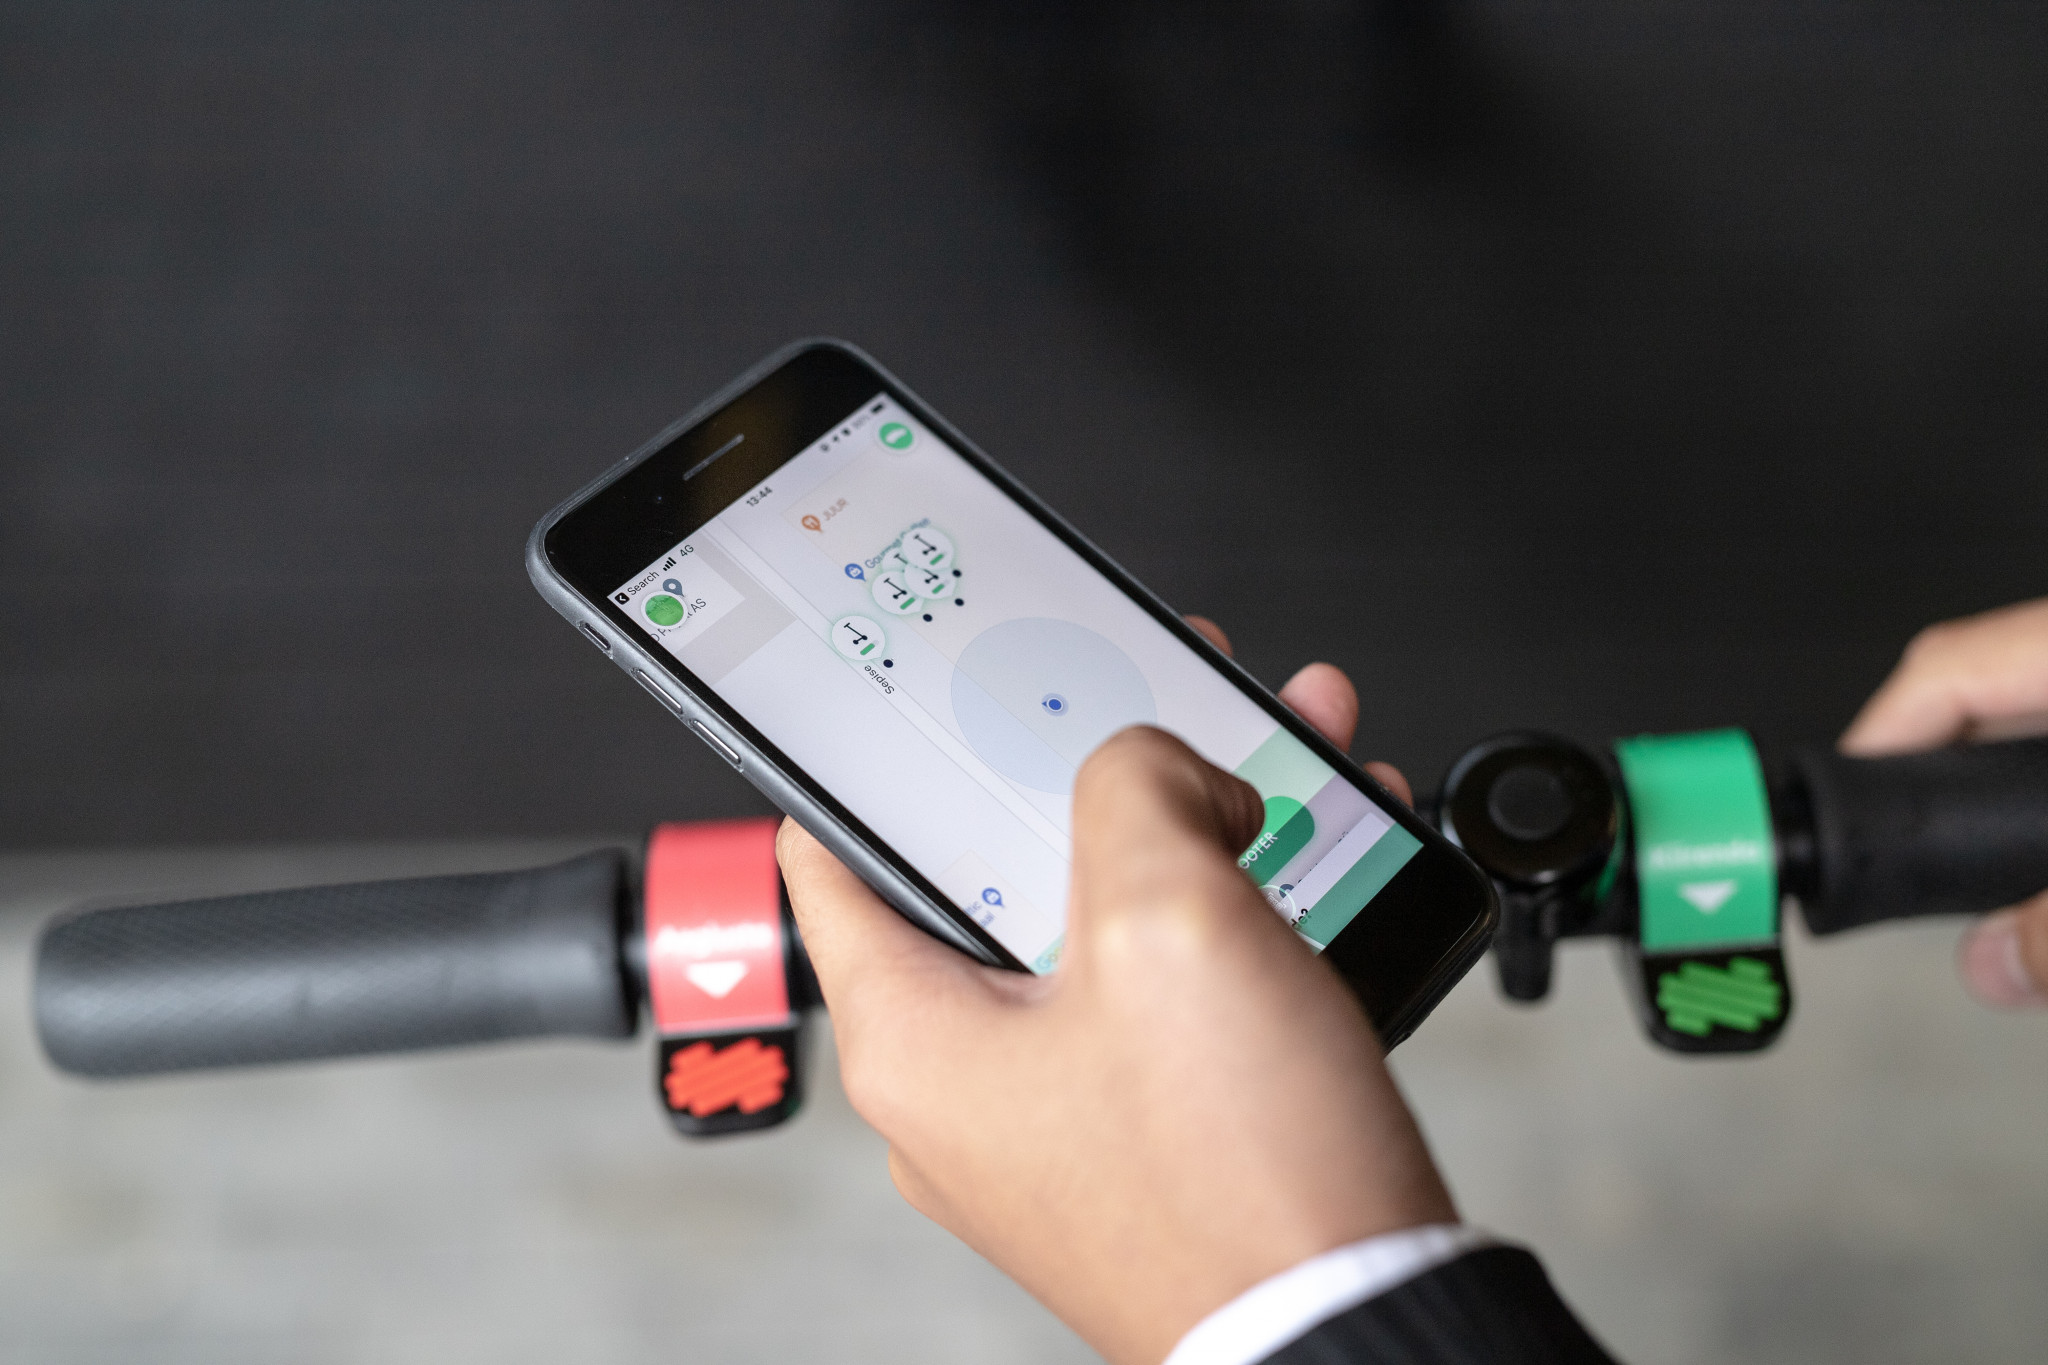 2978 Electric Scooter App Renee Altrov 481750